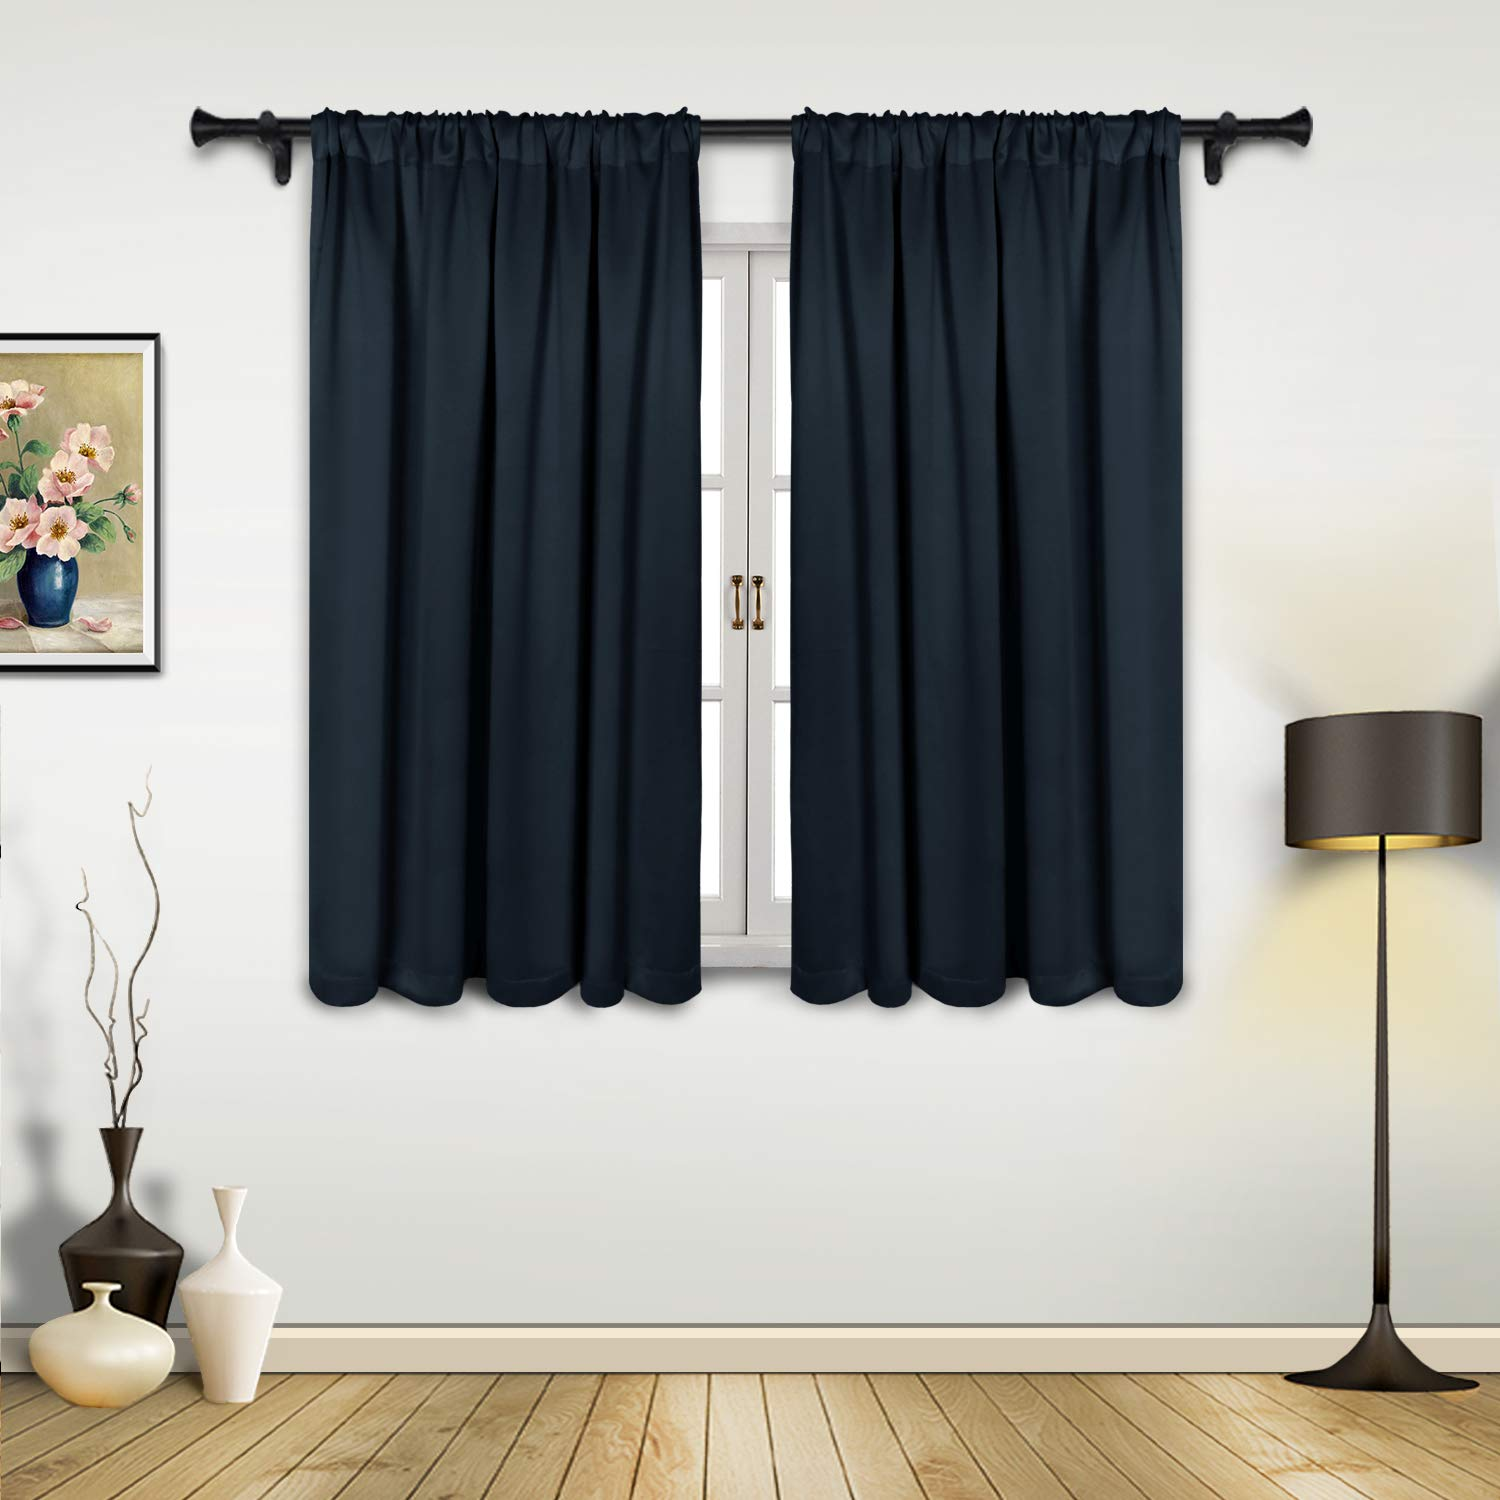 SUO AI TEXTILE Blackout Curtains Thick Darkening Drapes Suede Like Silver Print Darkening Thermal Insulated Grommet Window Curtain,52 by 84 Inch,2 Panels,White FUMILY